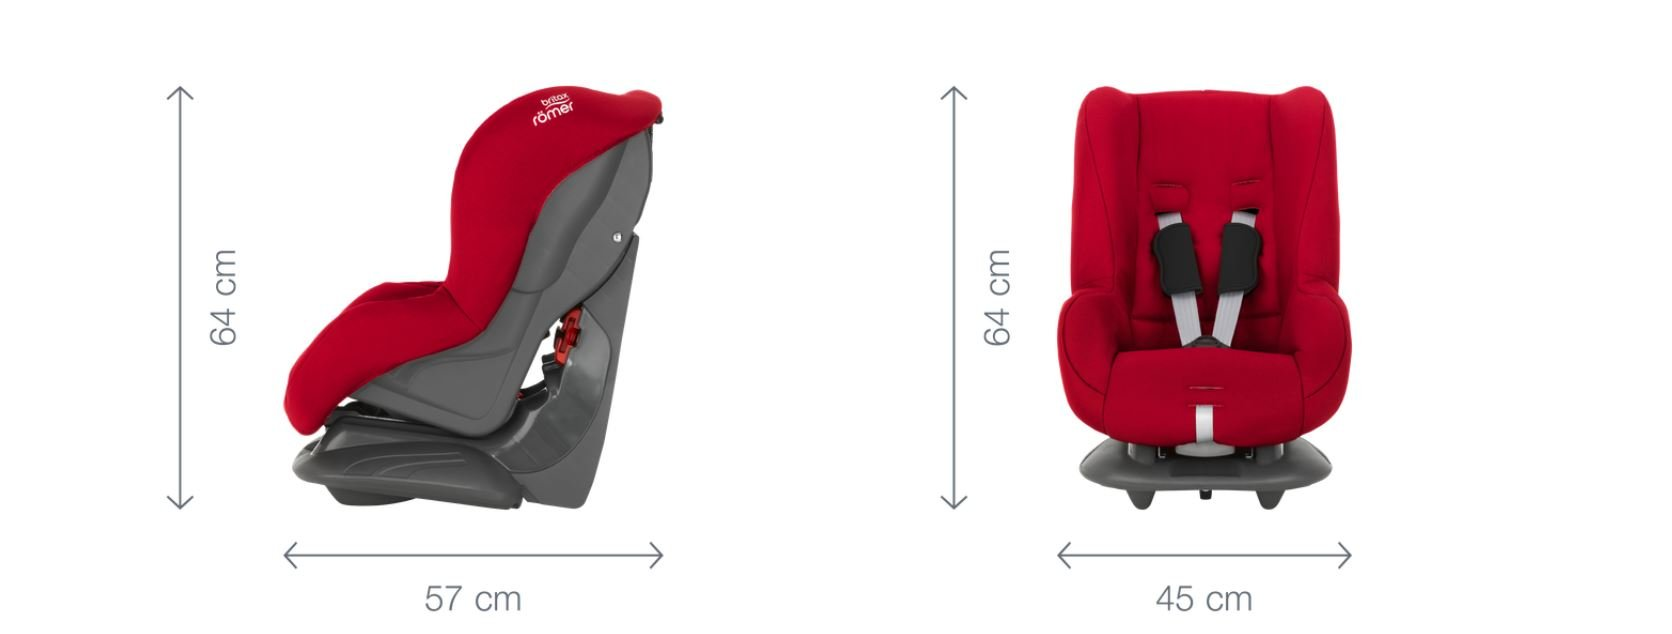 Britax Römer ECLIPSE Group 1 (9-18kg) Car Seat - Cosmos Black Britax Simple installation with a 3-point or 2-point seat belt Superior protection - side impact protection, performance chest pads and pitch control system TUV certified for aircraft travel 6